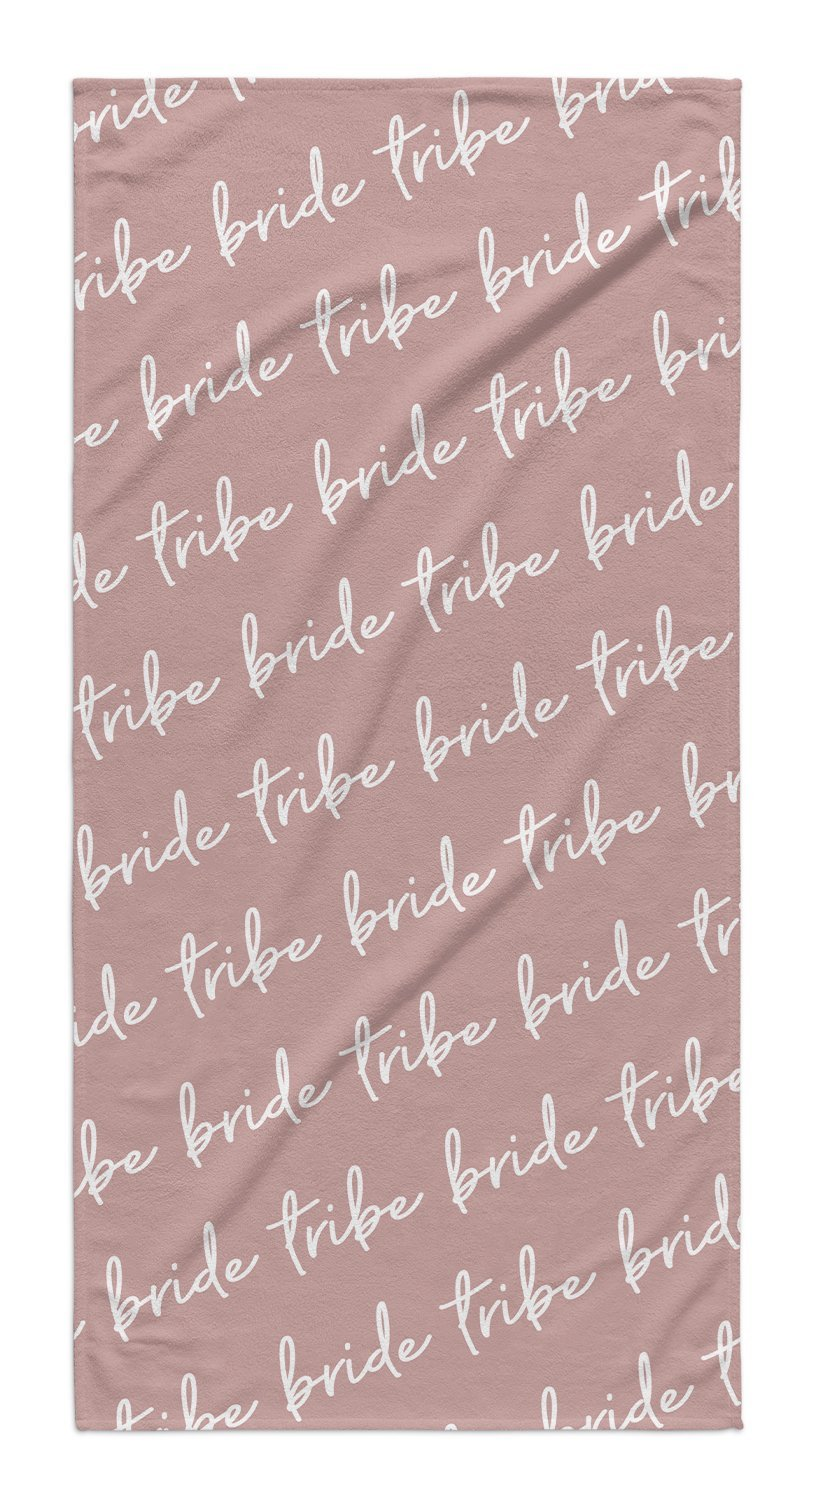 BRIDE TRIBE CURSIVE TOWEL